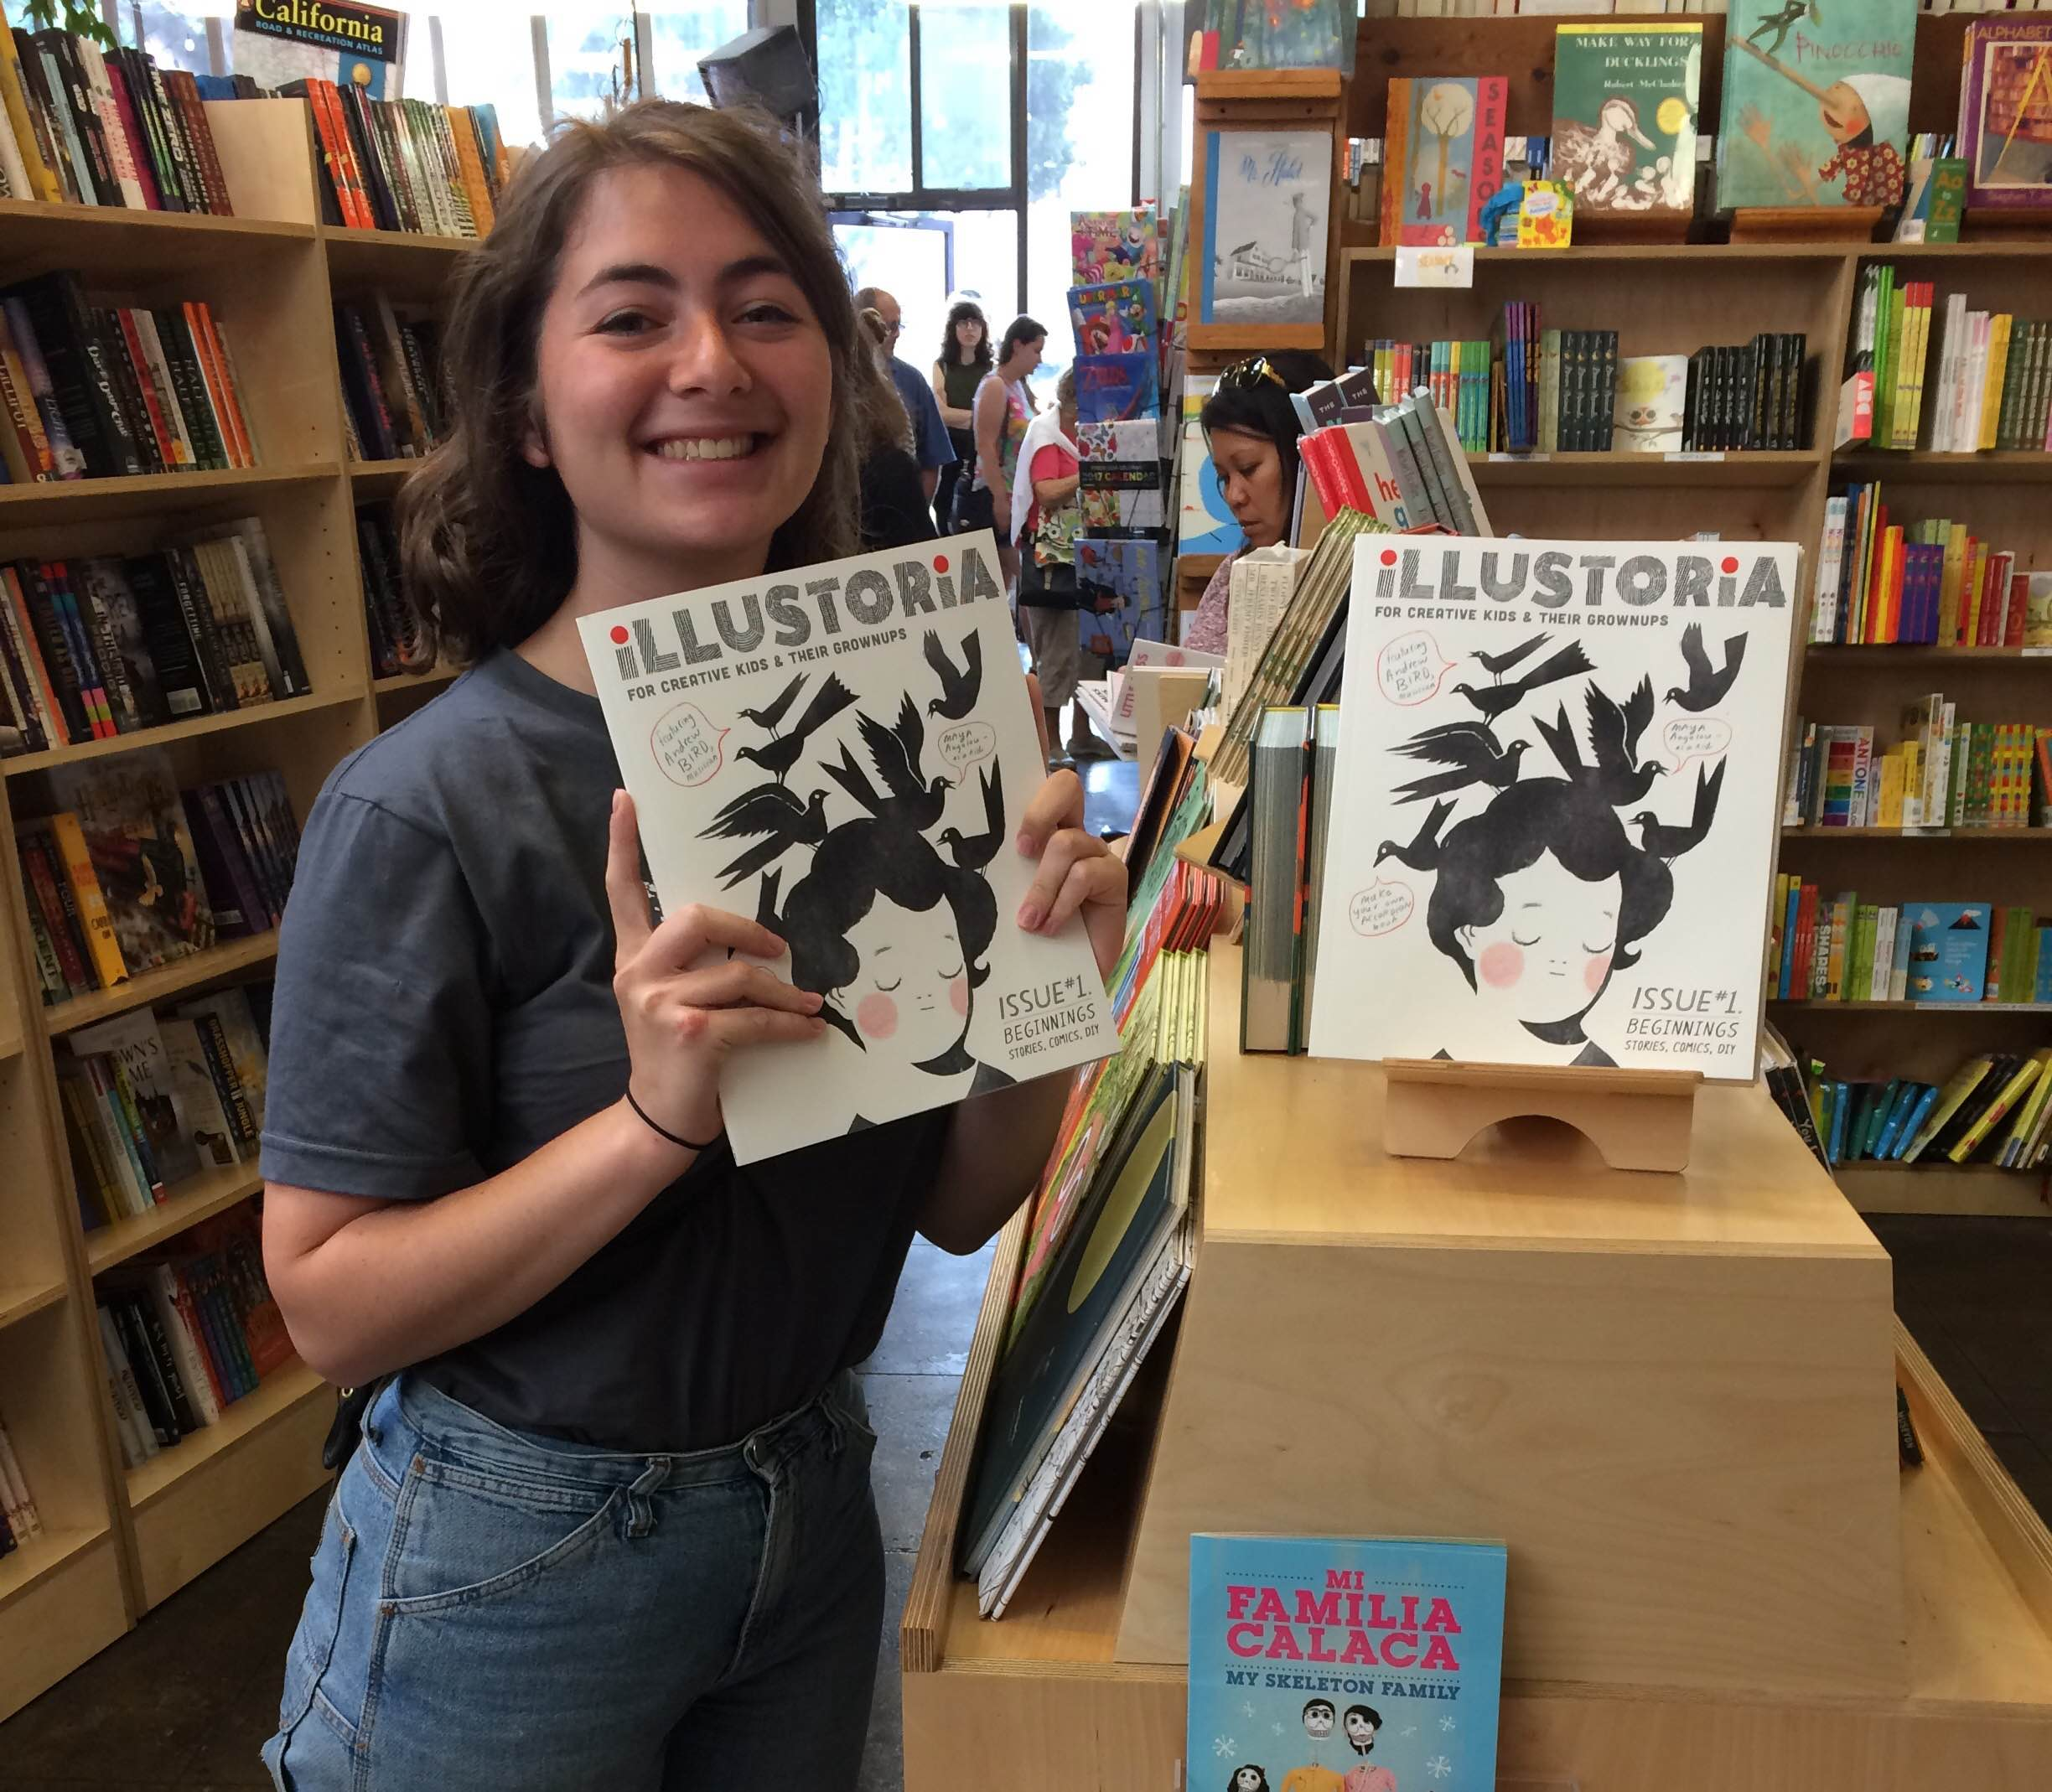 Claire holding the first issue of Illustoria at Skylight Books in Los Angeles.